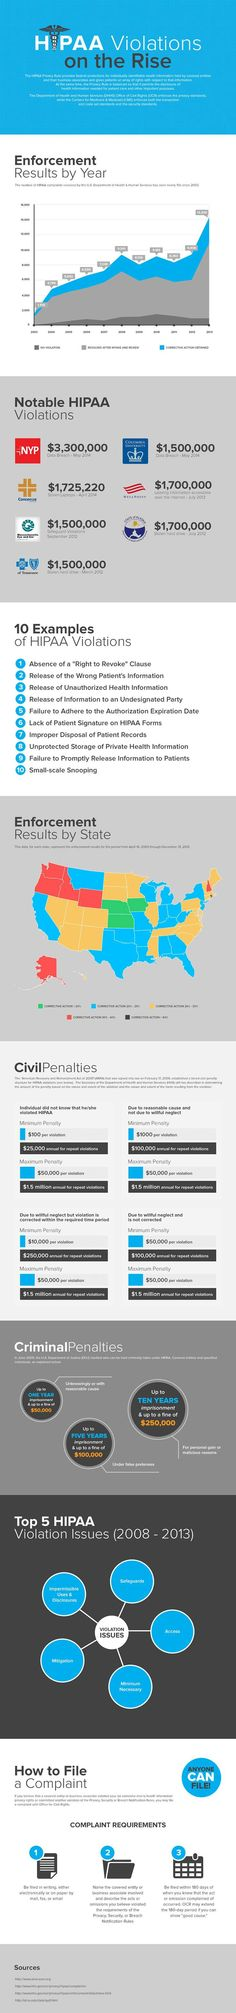 HIPAA Violations on the Rise #infographic - Brought to you By: CAM HIPAA Solutions 888-959-0220